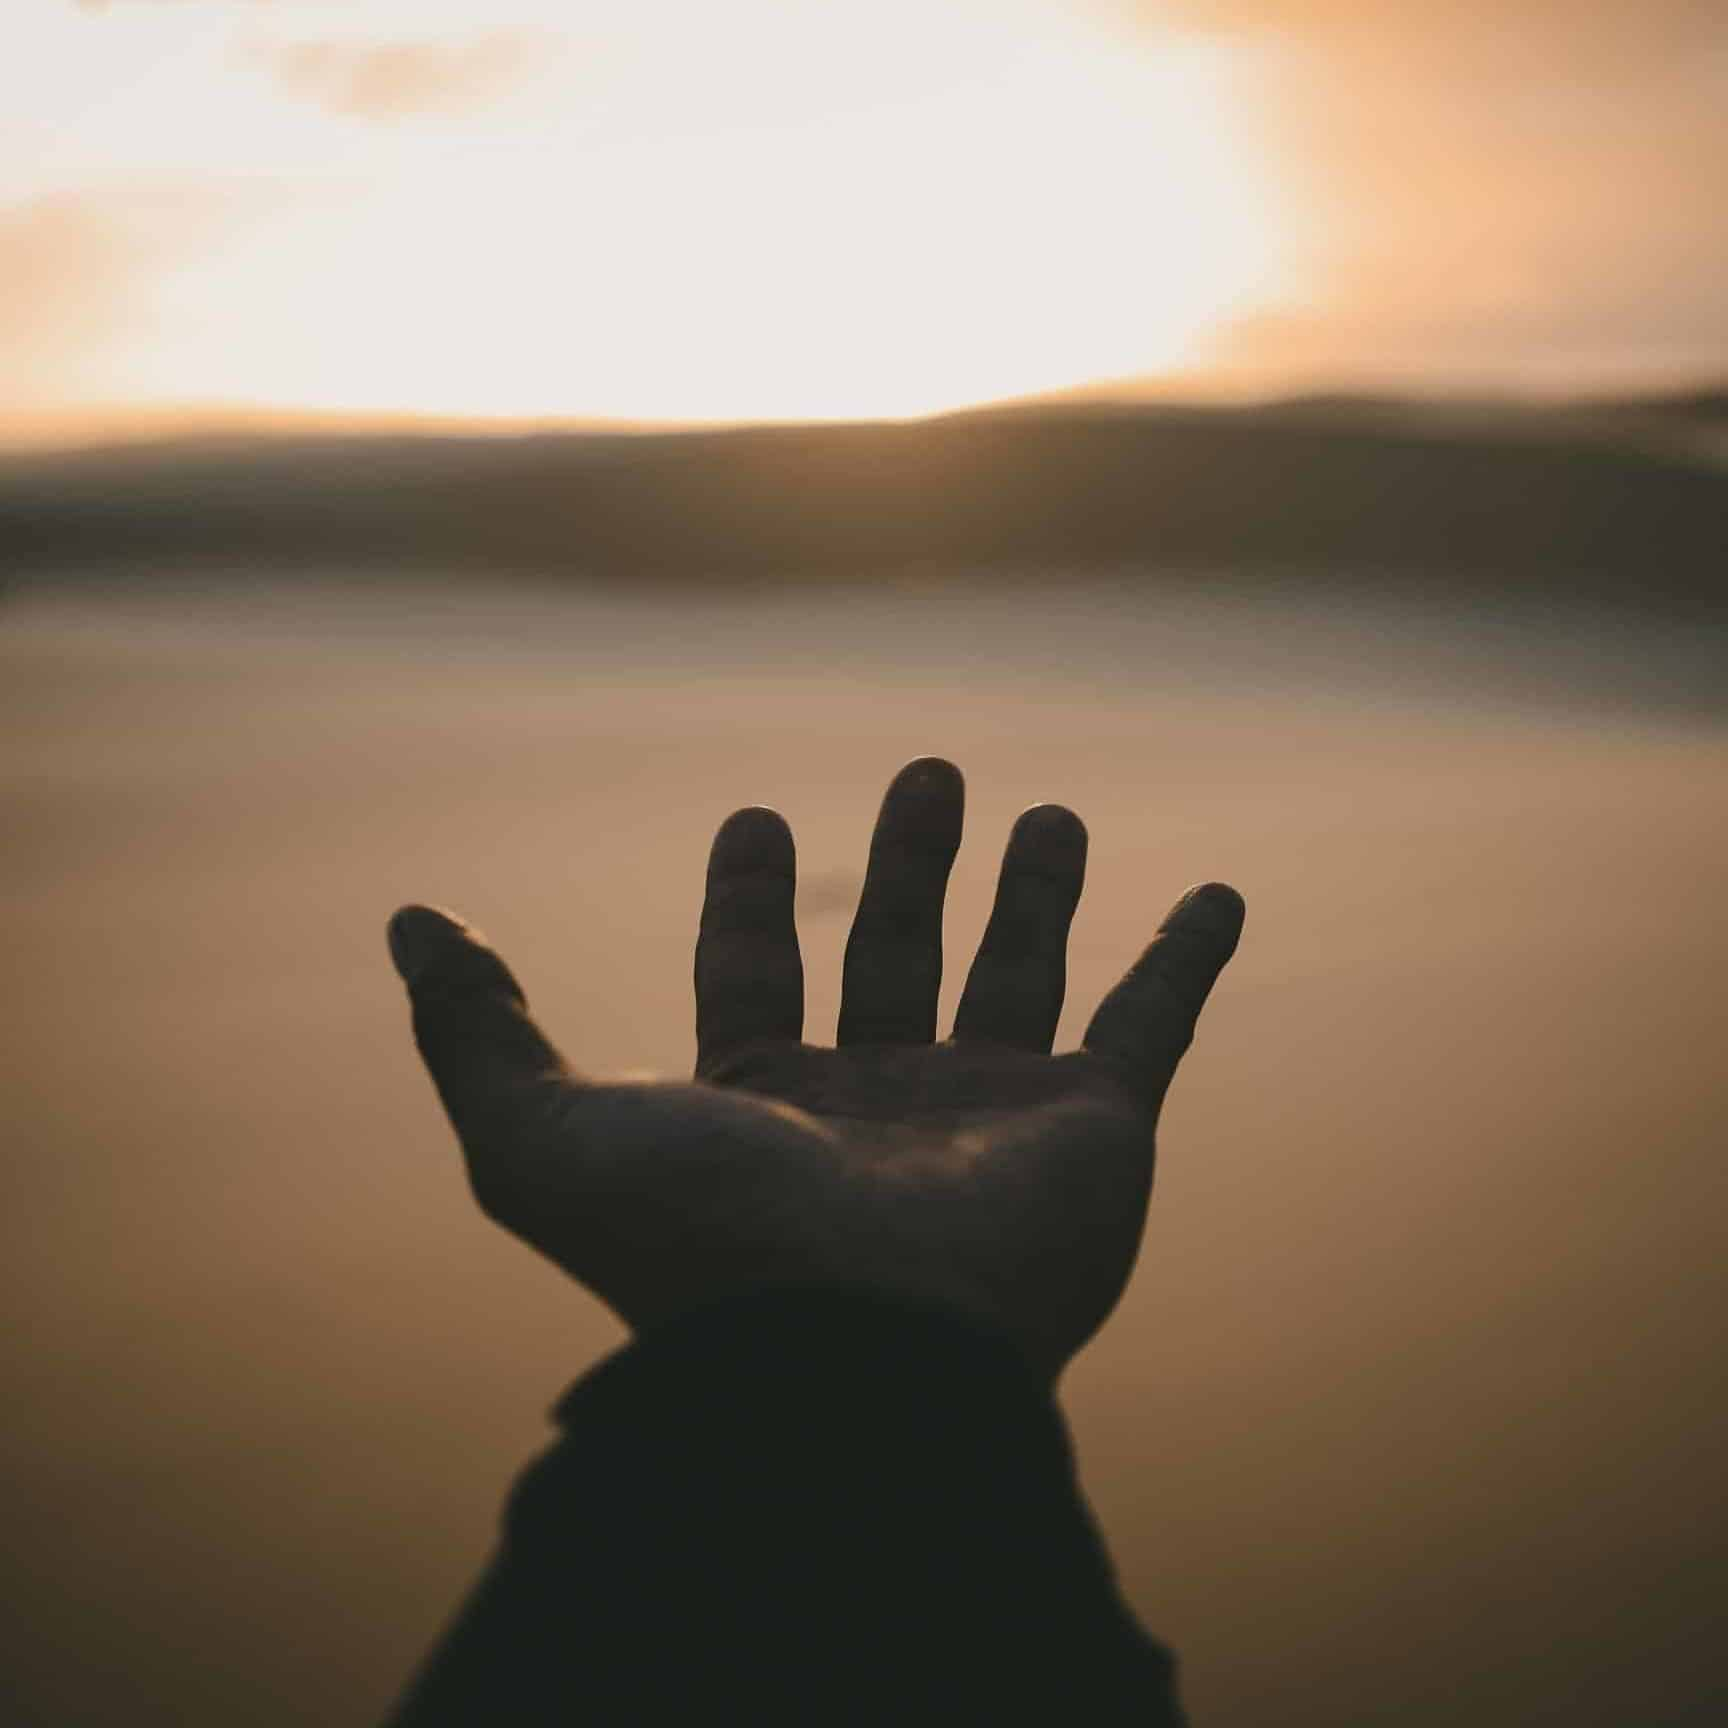 A hand reaching out to the sunset.